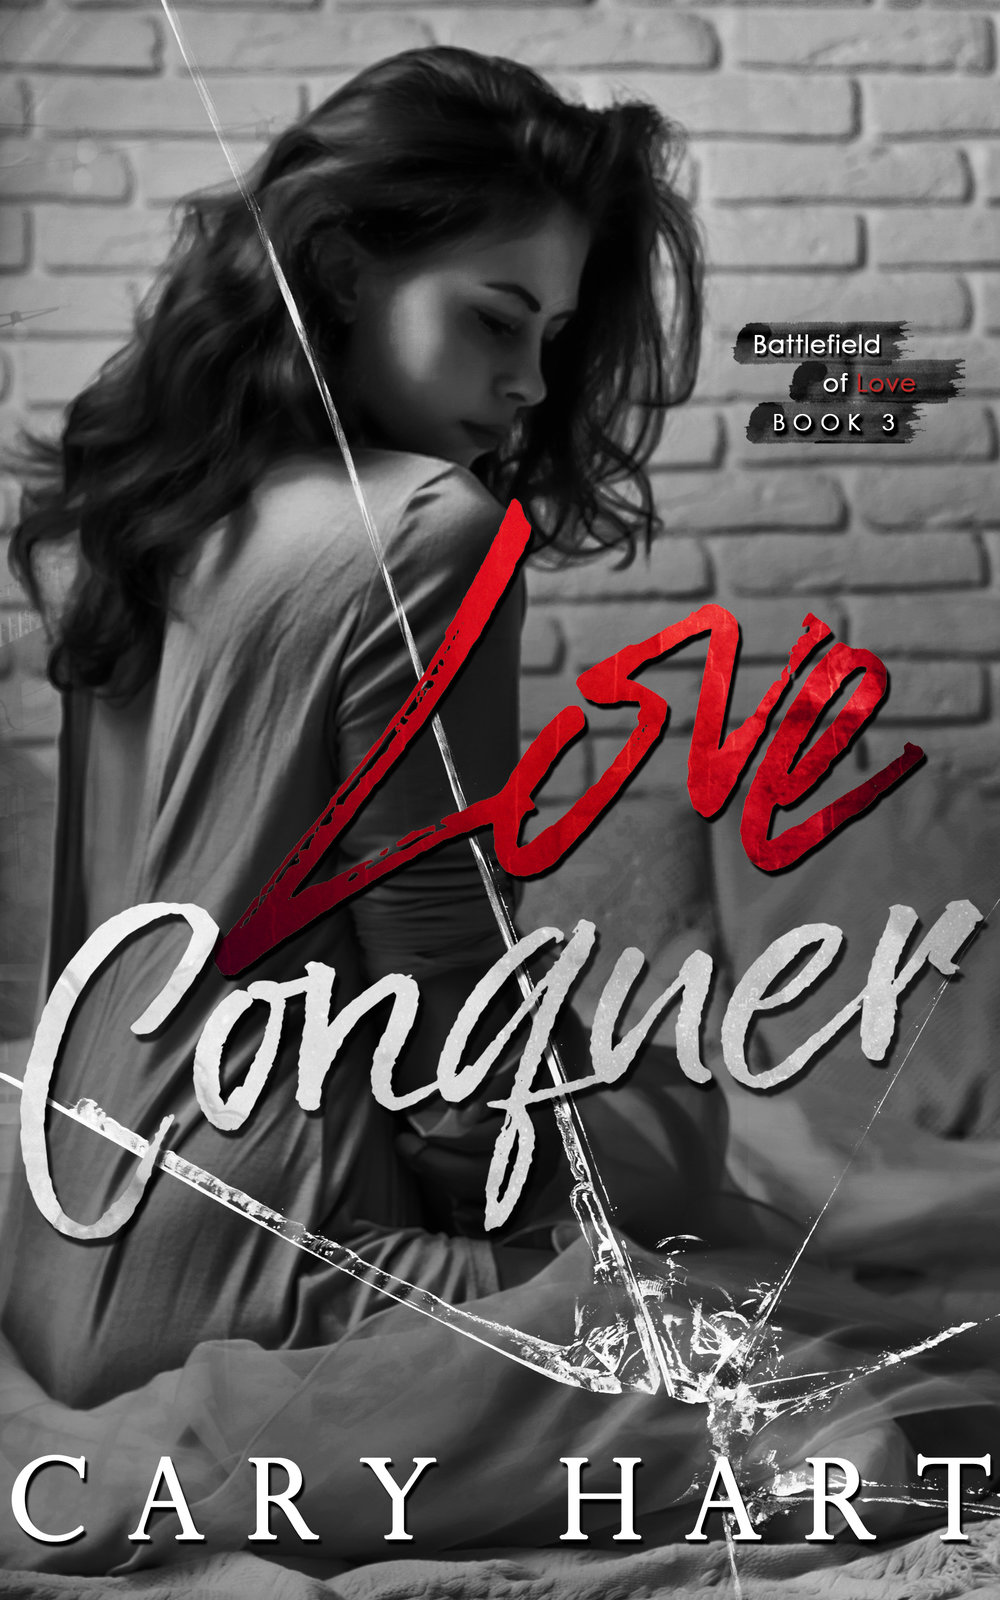 Love Conquer Revision Ebookjpg.jpg